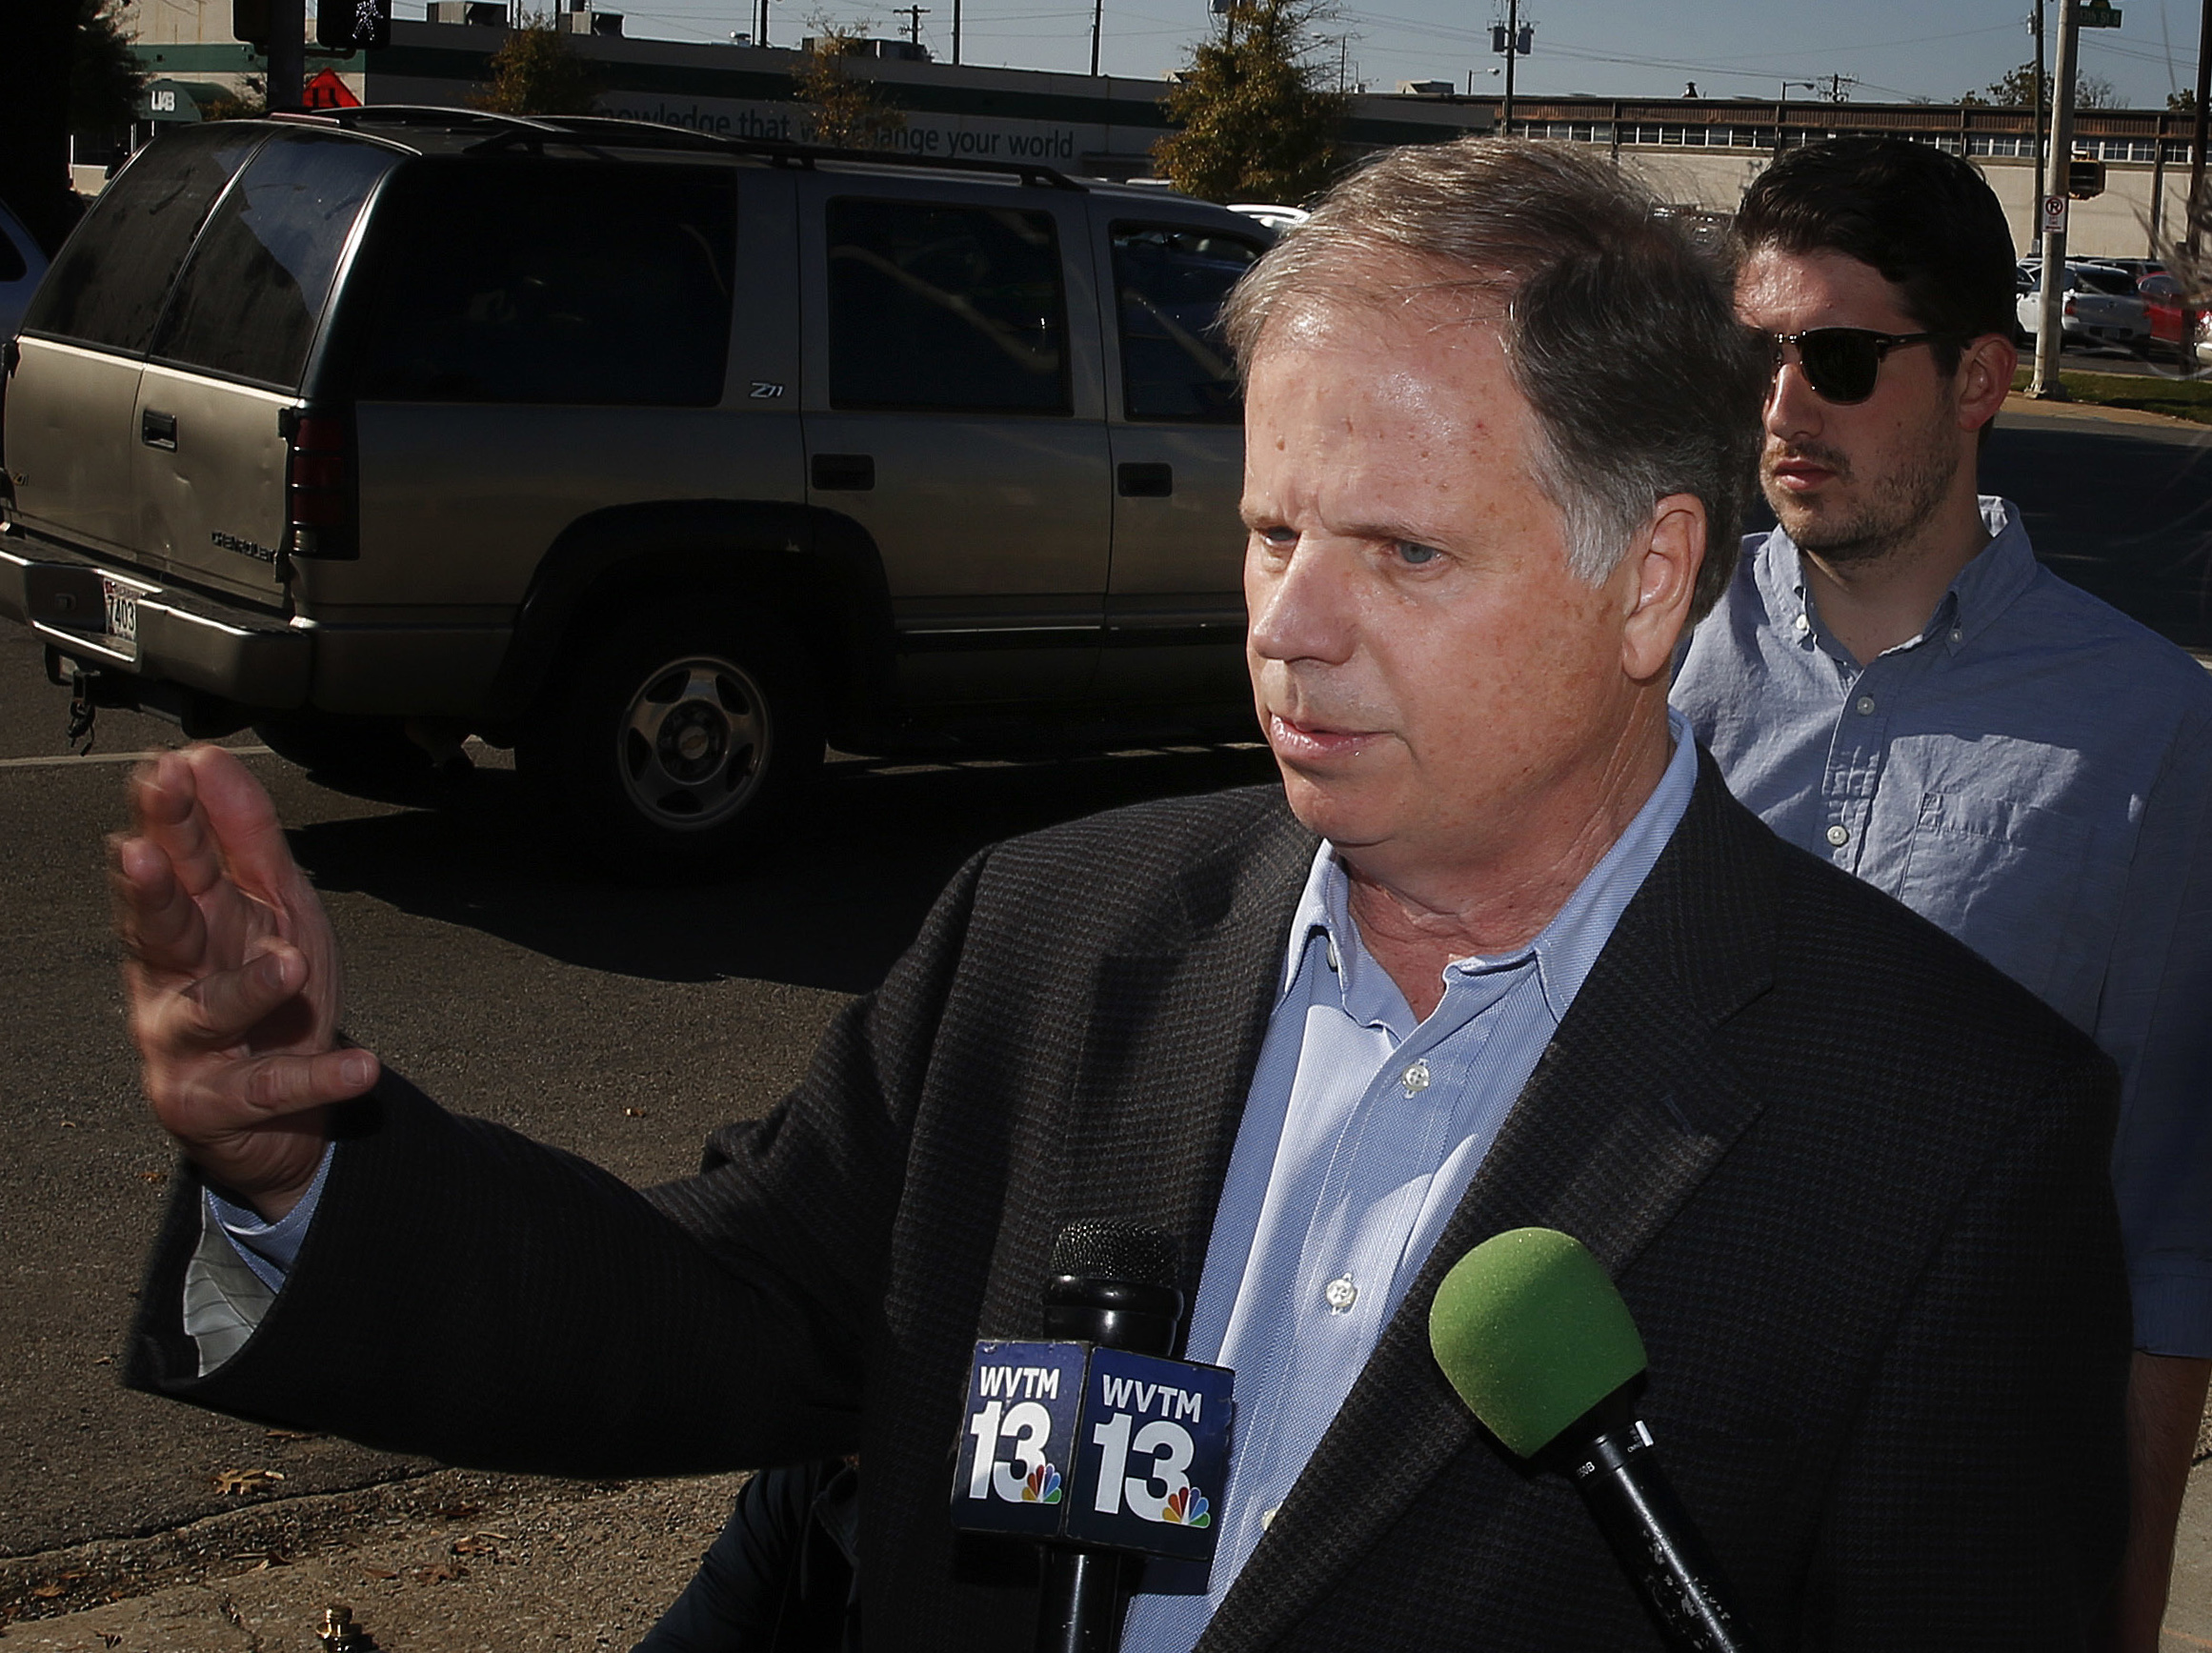 White House urges Roy Moore to concede, as supporters look